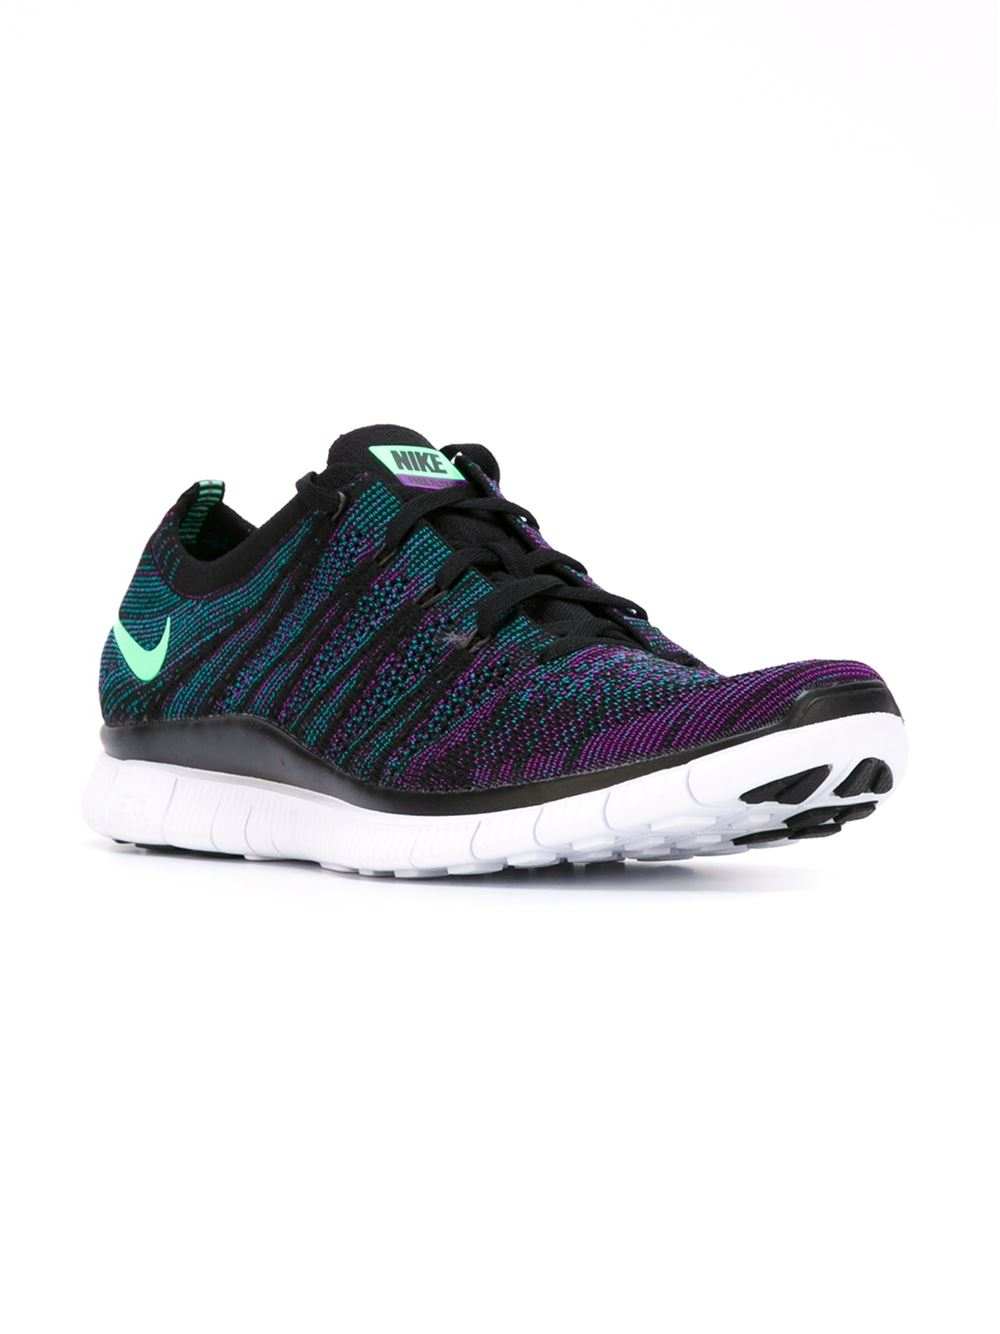 nike 39 free flyknit 39 sneakers in blue for men pink purple lyst. Black Bedroom Furniture Sets. Home Design Ideas